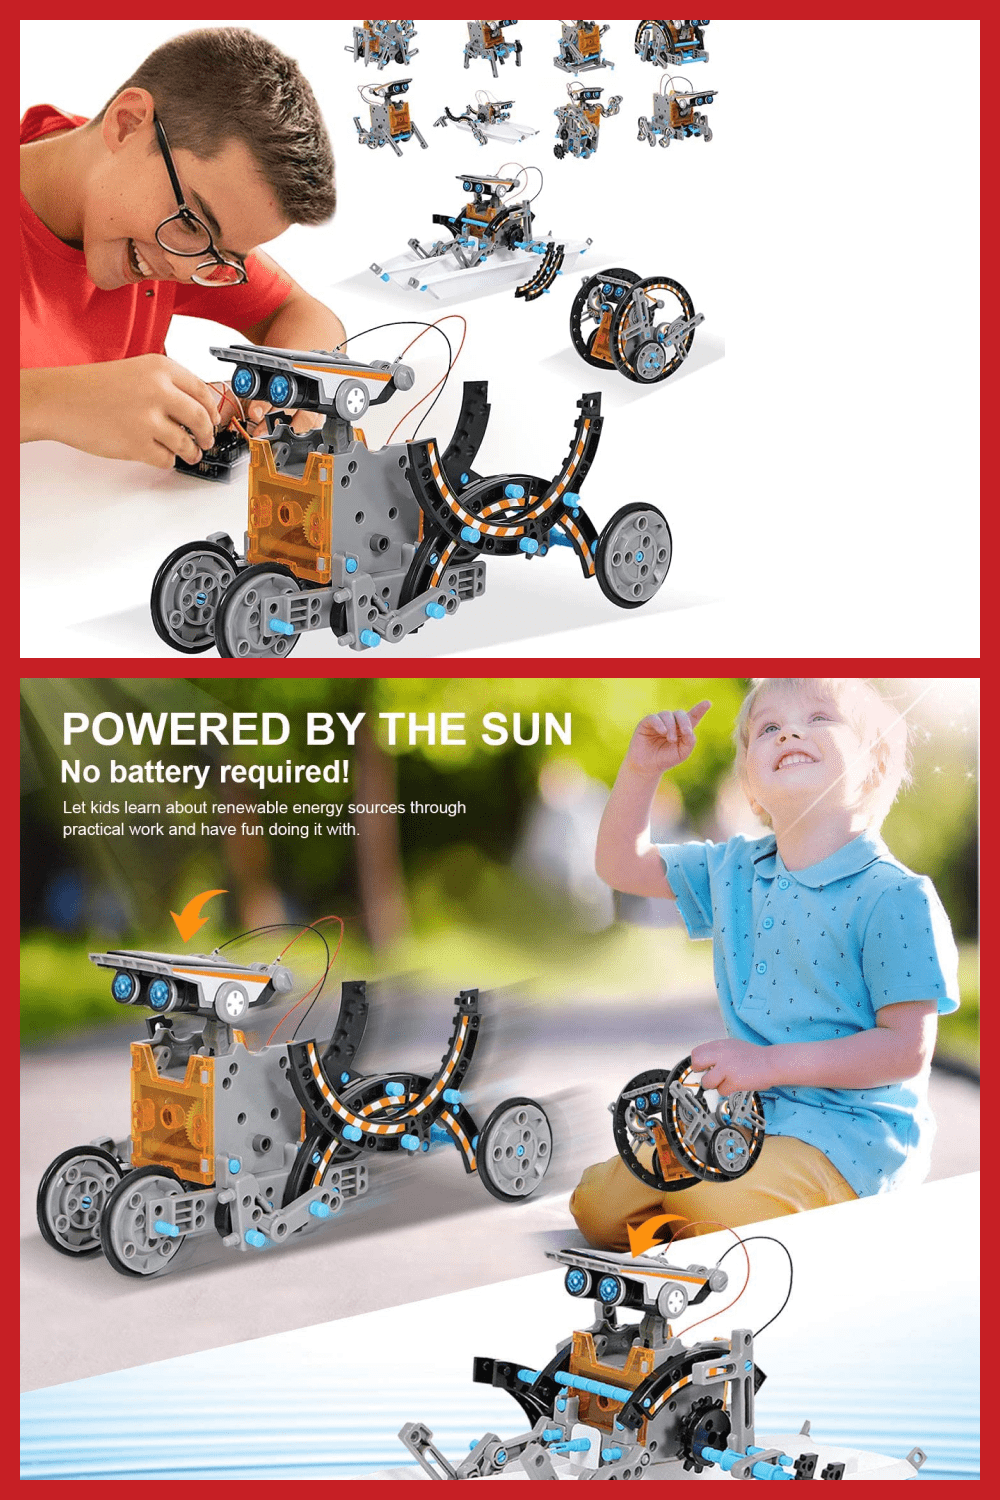 Fine motor skills are an important skill for any child. This toy will allow you to develop not only fine motor skills, but also your imagination.